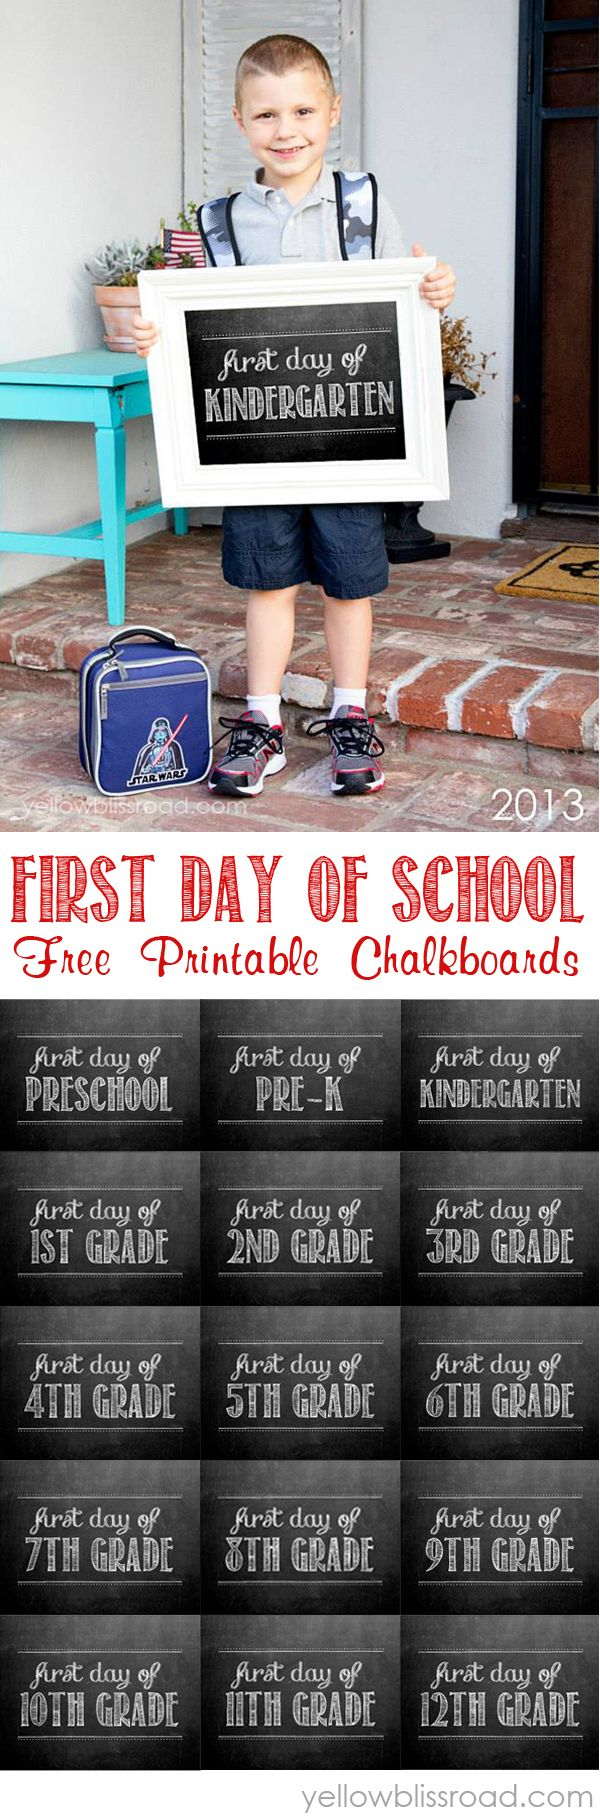 Free Chalkboard Printable for the First Day of School